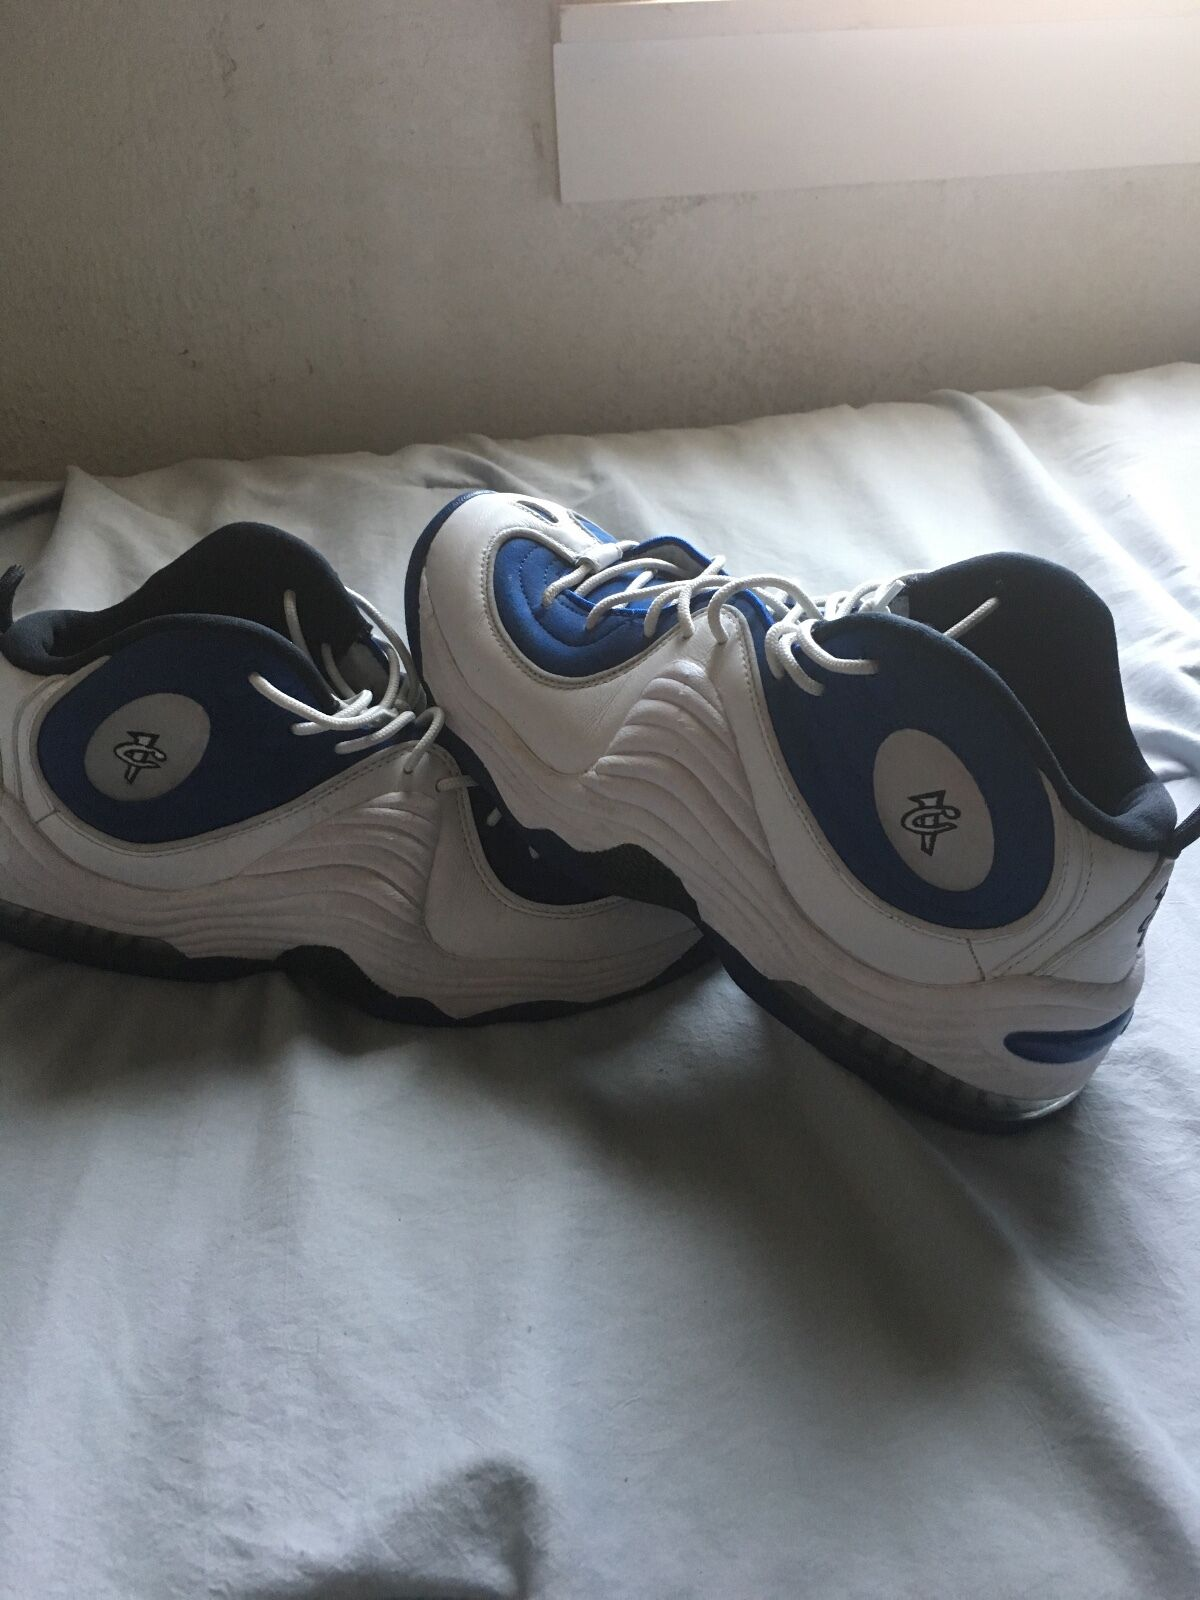 NIKE-AIRPENNY 2 (White/blue/3M)  Cheap and fashionable